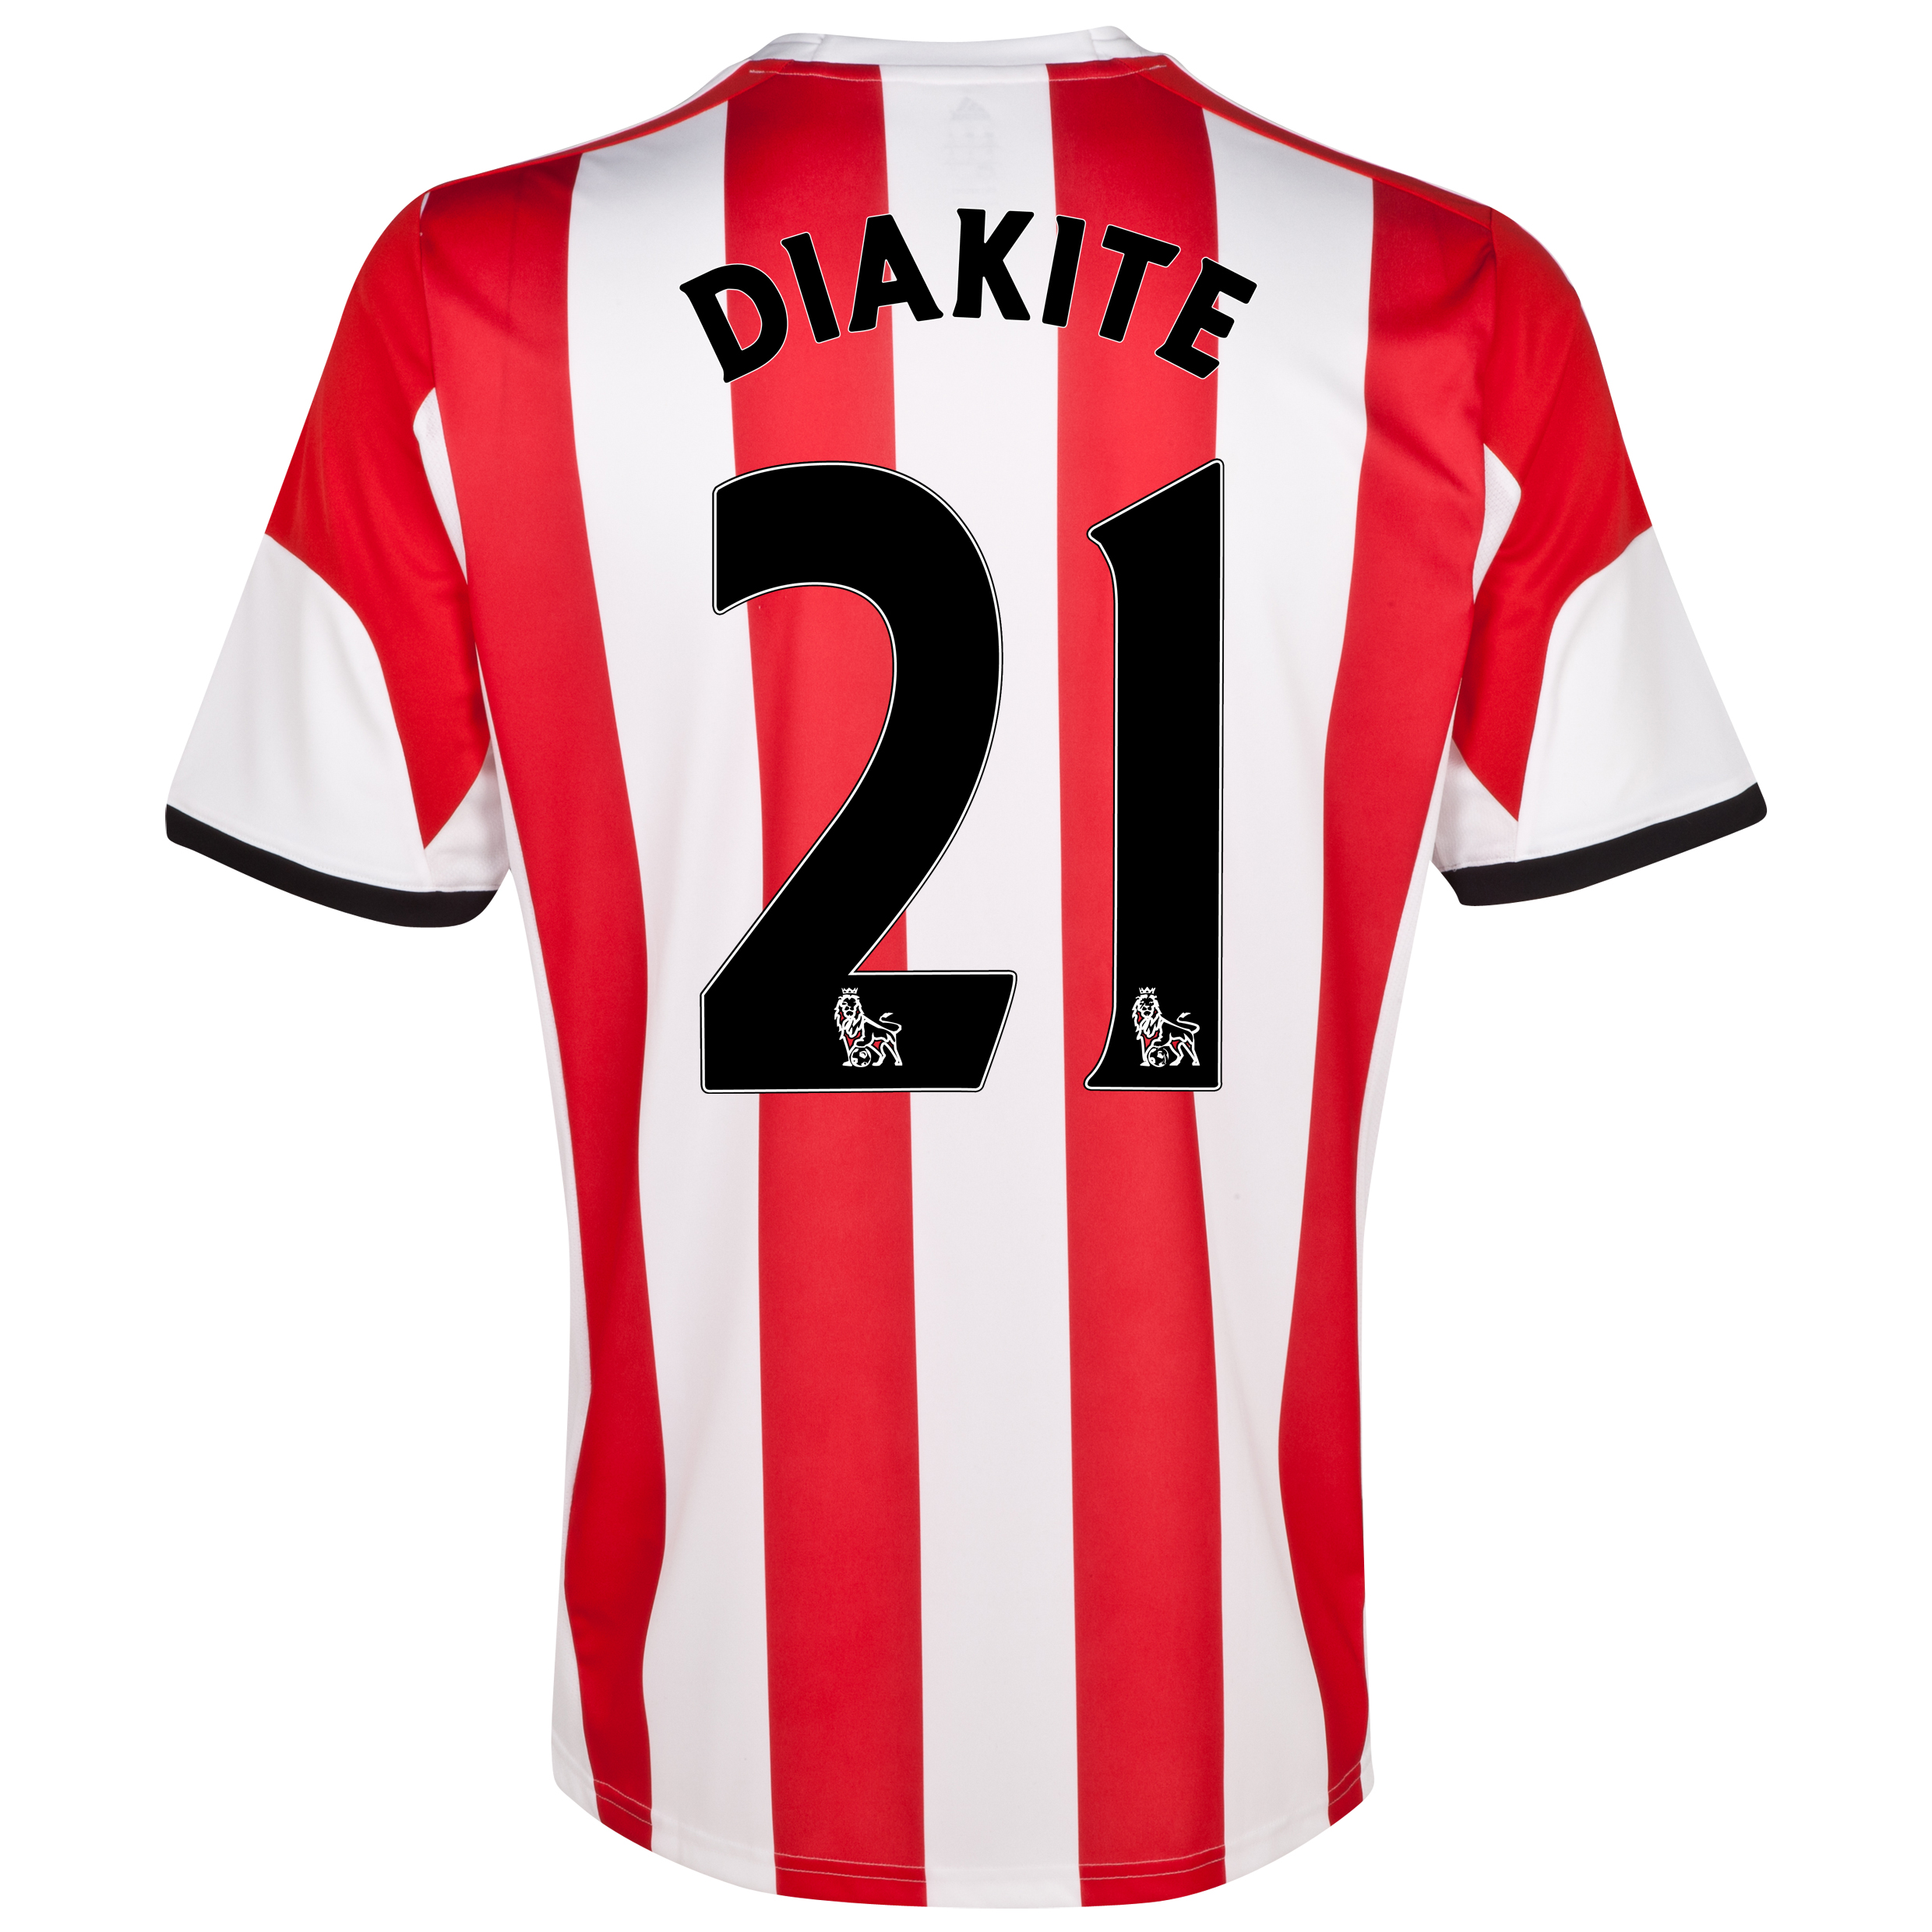 Sunderland Home Shirt 2013/14 with Diakite 21 printing